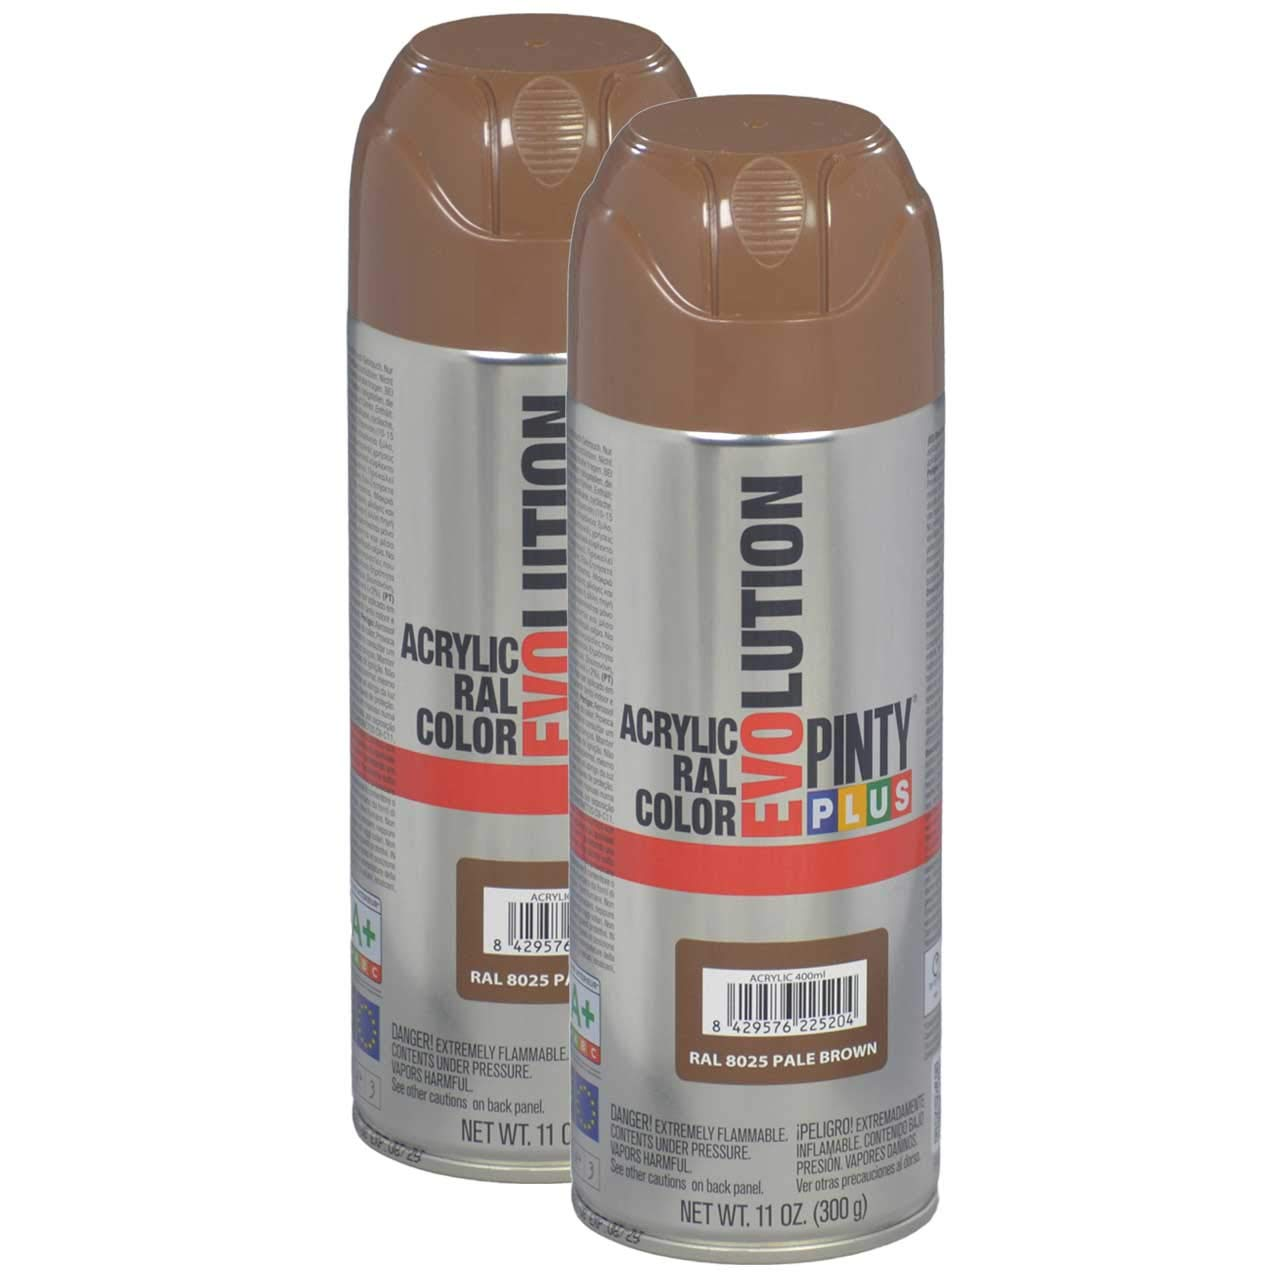 Fast Dry, Low Odor - Acrylic Spray Paint PintyPlus Evolution - Pack of 2 (Pale Brown)